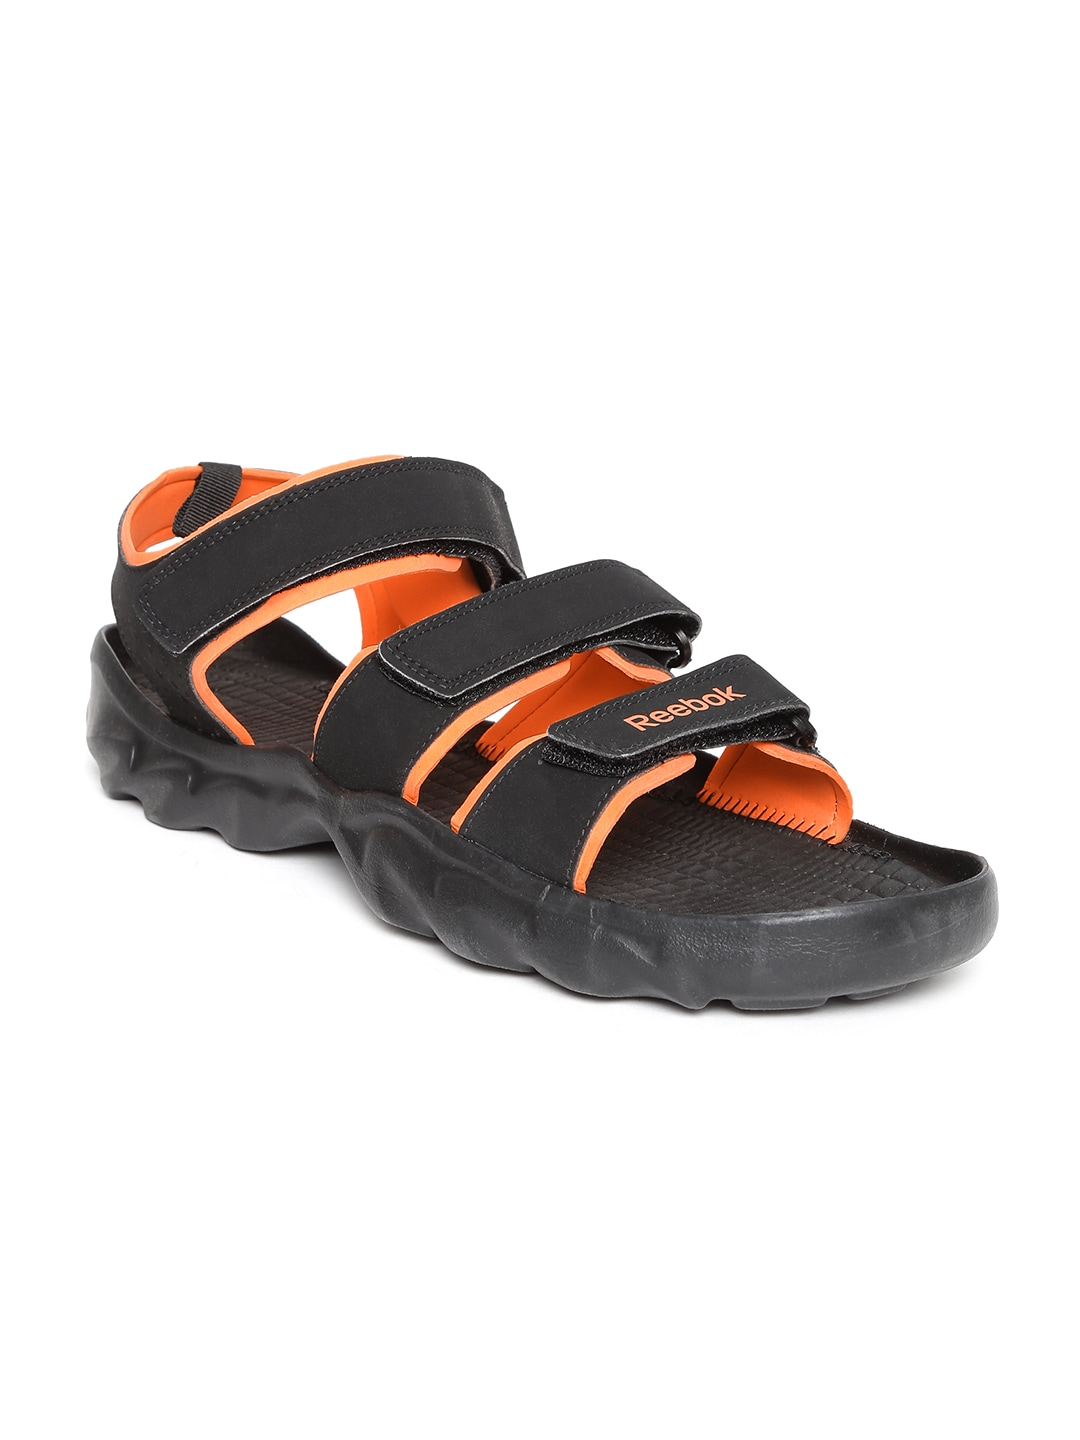 27e77aa16083 Reebok Jacket Tracksuits Sports Sandal - Buy Reebok Jacket Tracksuits Sports  Sandal online in India